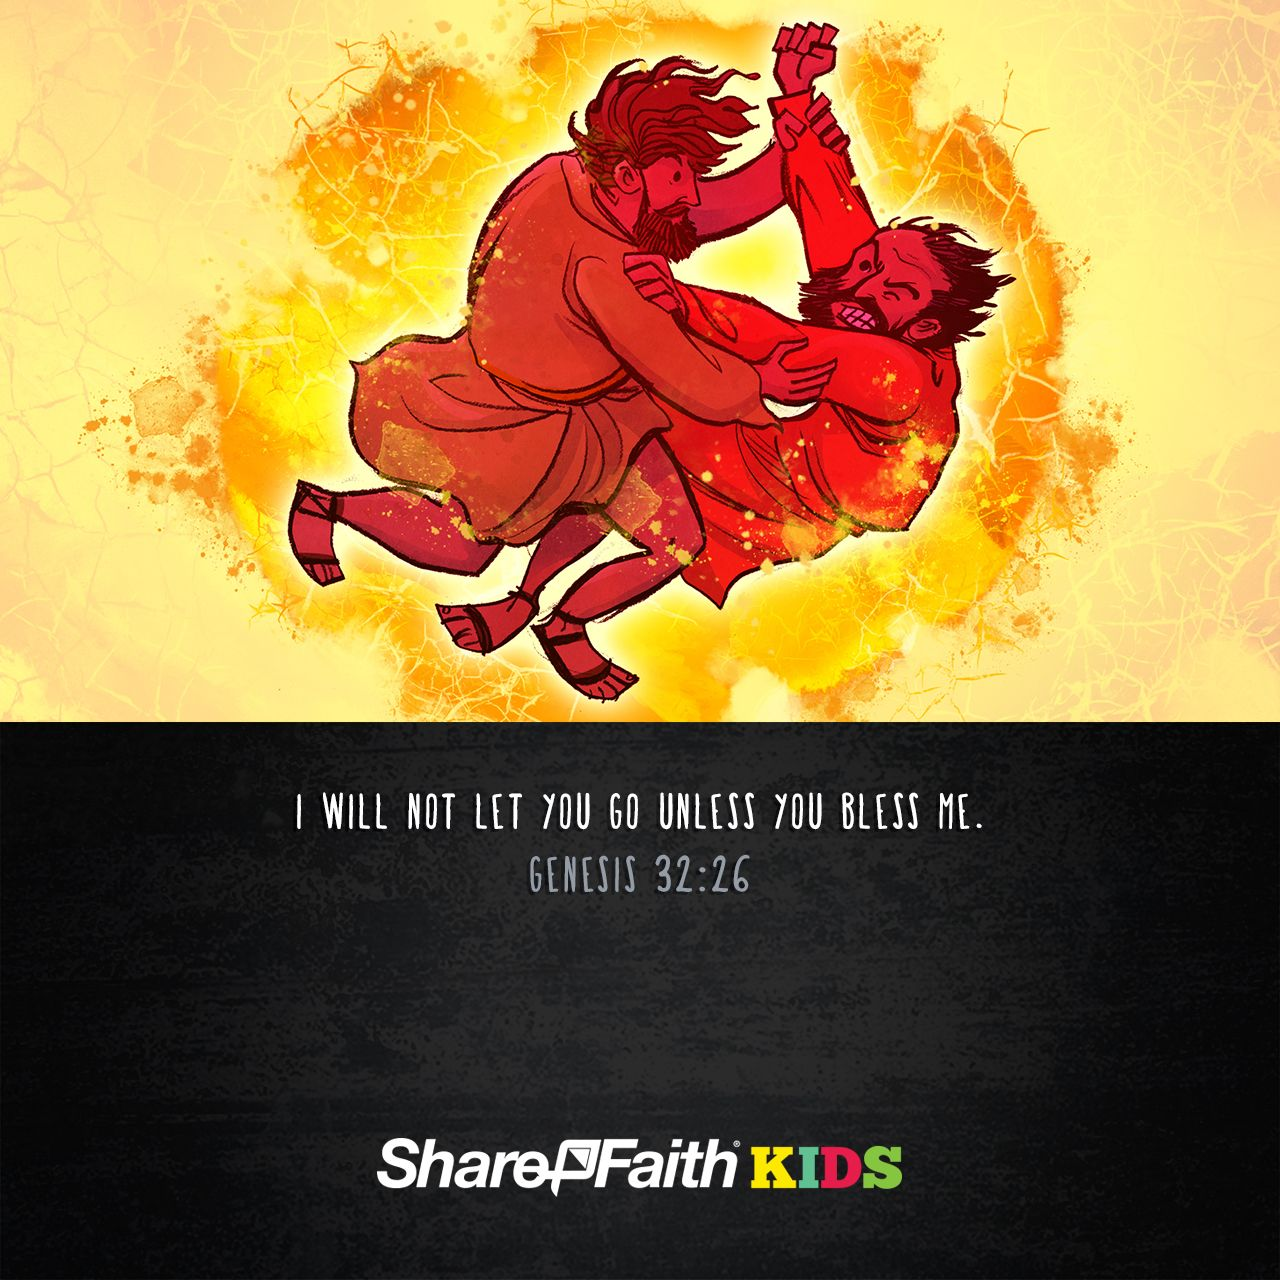 The Story Of Jacob Kids Bible Scripture This Jacob Wrestles With God Kids Bible Story I Sunday School Lessons Bible Activities For Kids Bible Stories For Kids